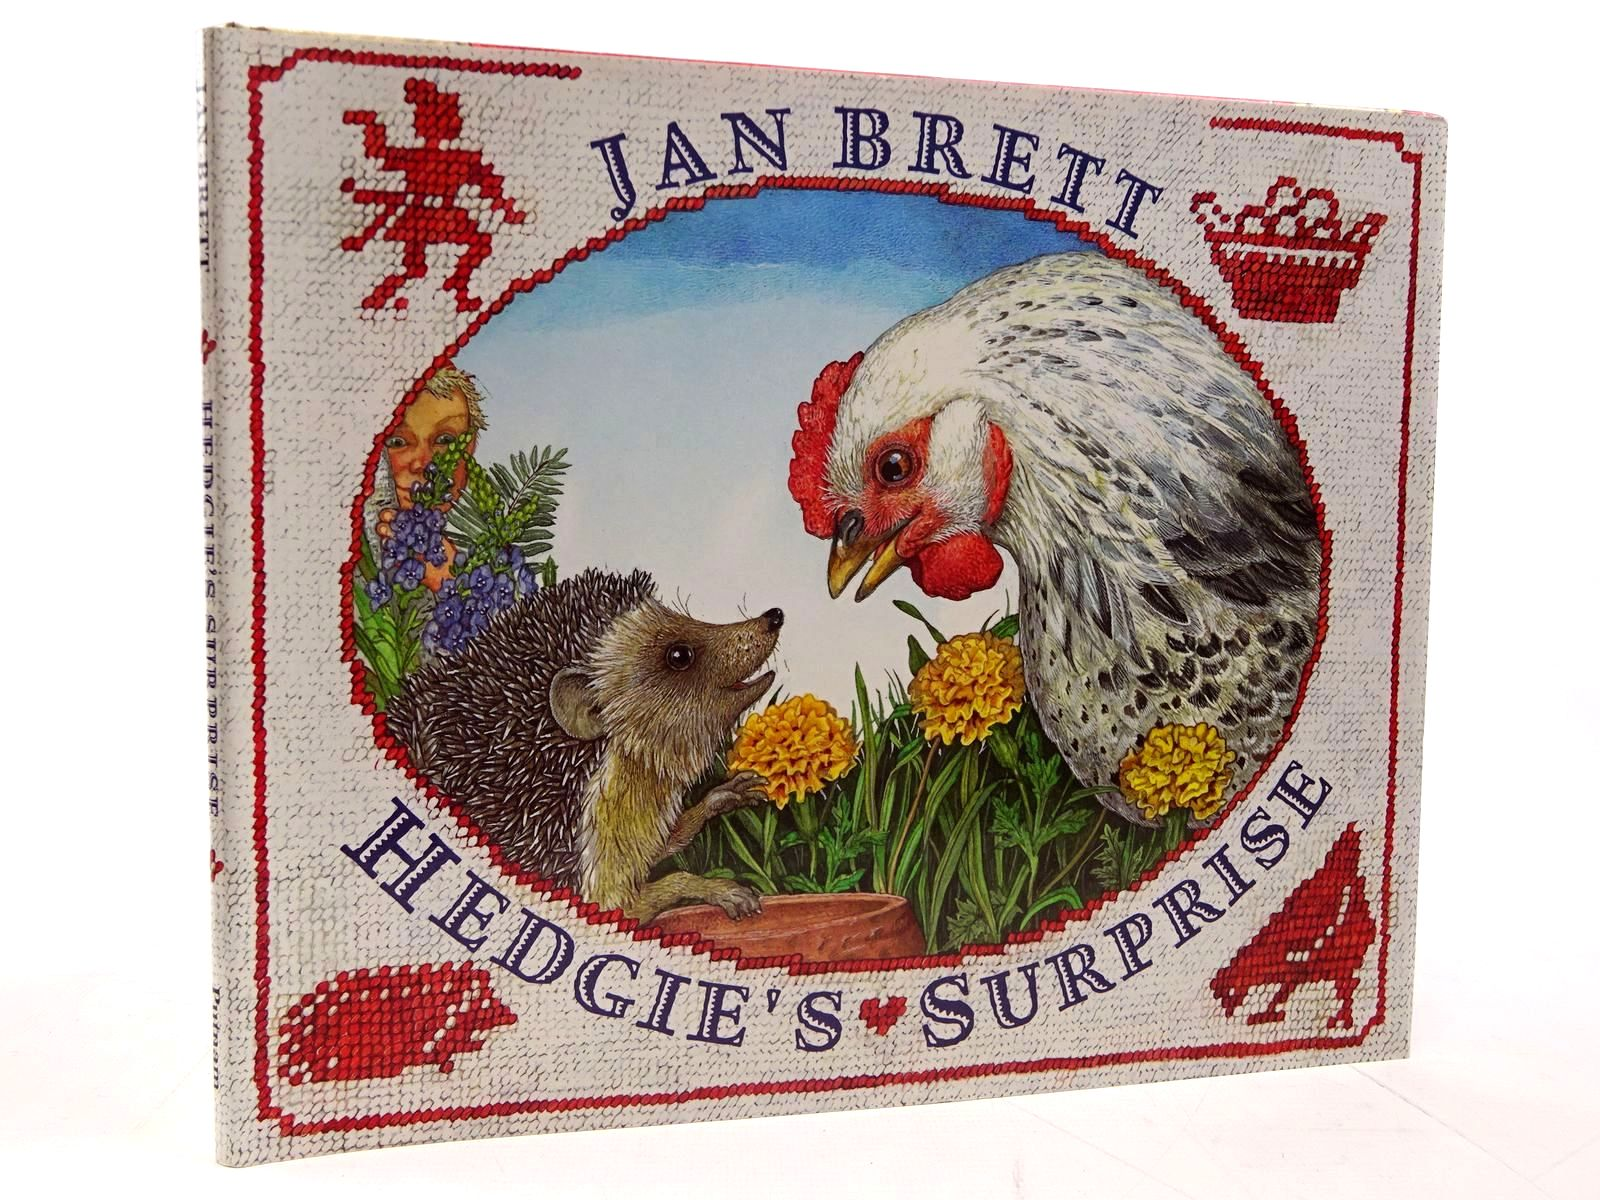 Photo of HEDGIE'S SURPRISE written by Brett, Jan illustrated by Brett, Jan published by G.P. Putnam's Sons (STOCK CODE: 2130800)  for sale by Stella & Rose's Books